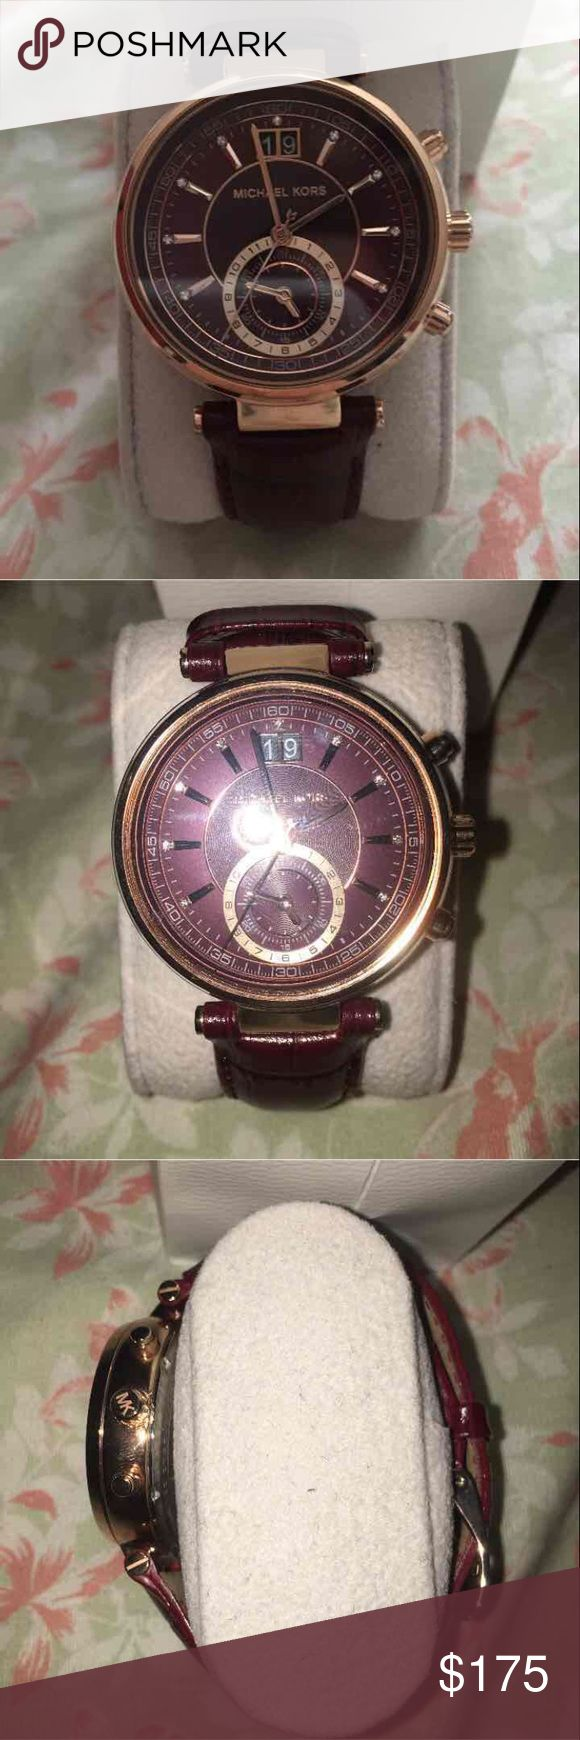 Michael Kors Watch New Michael Kors Watch! Only used to wear to an event once! KORS Michael Kors Accessories Watches